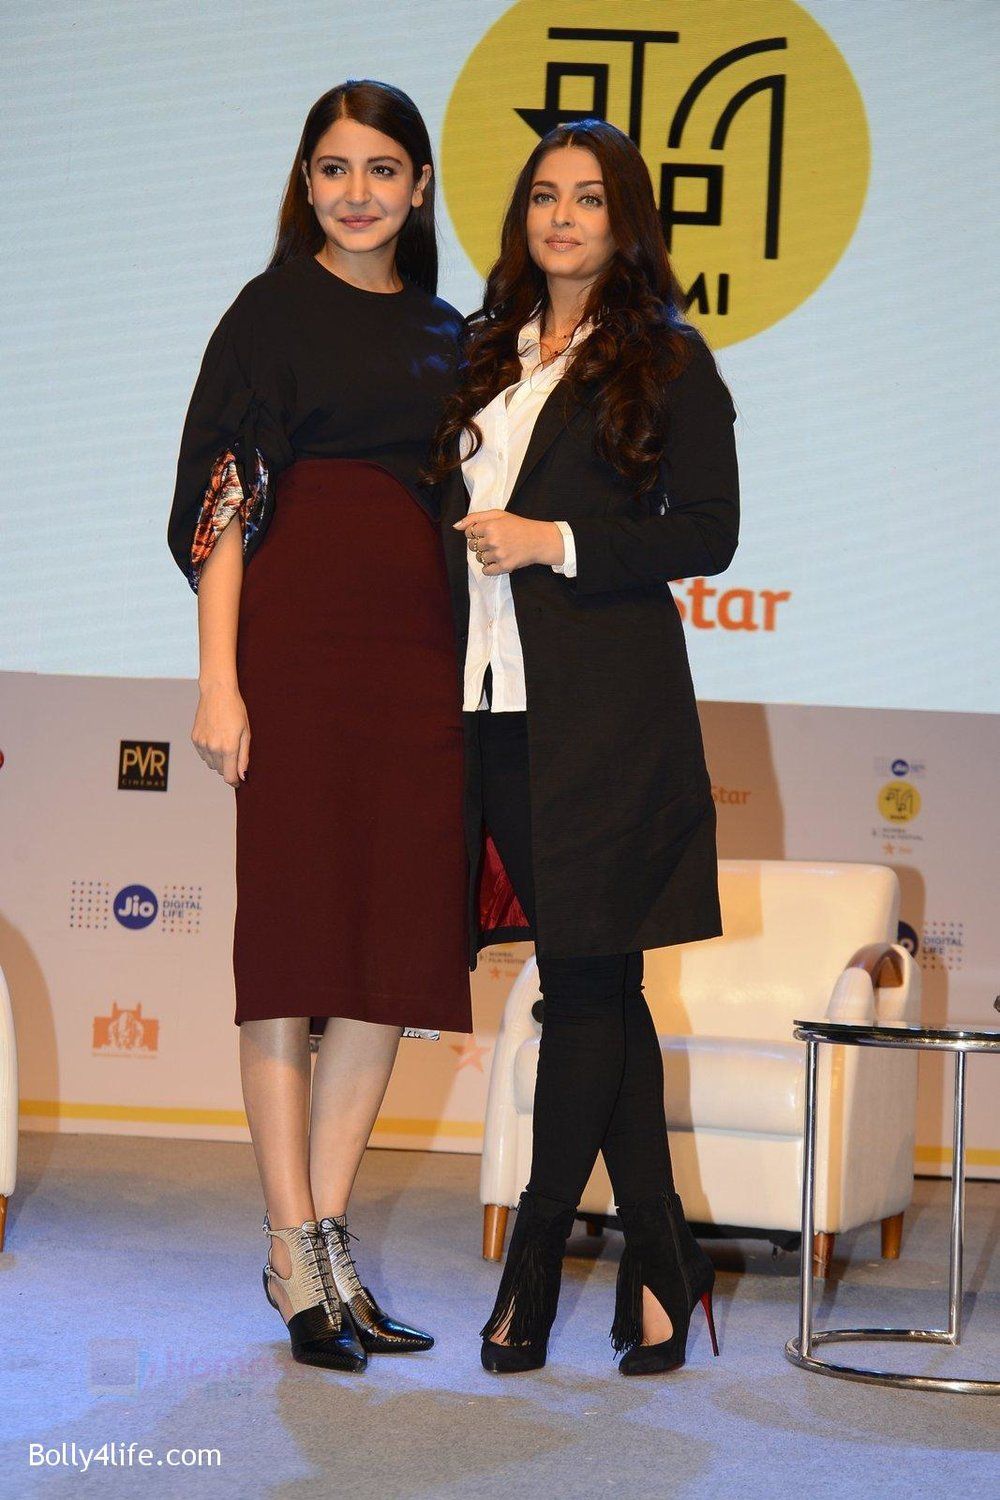 Anushka-Sharma-Aishwarya-Rai-talk-about-their-movie-Ae-Dil-Hai-Mushkil-during-the-Jio-MAMI-18th-Mumbai-Film-Festival-with-star-on-21st-Oct-2016-16.jpg